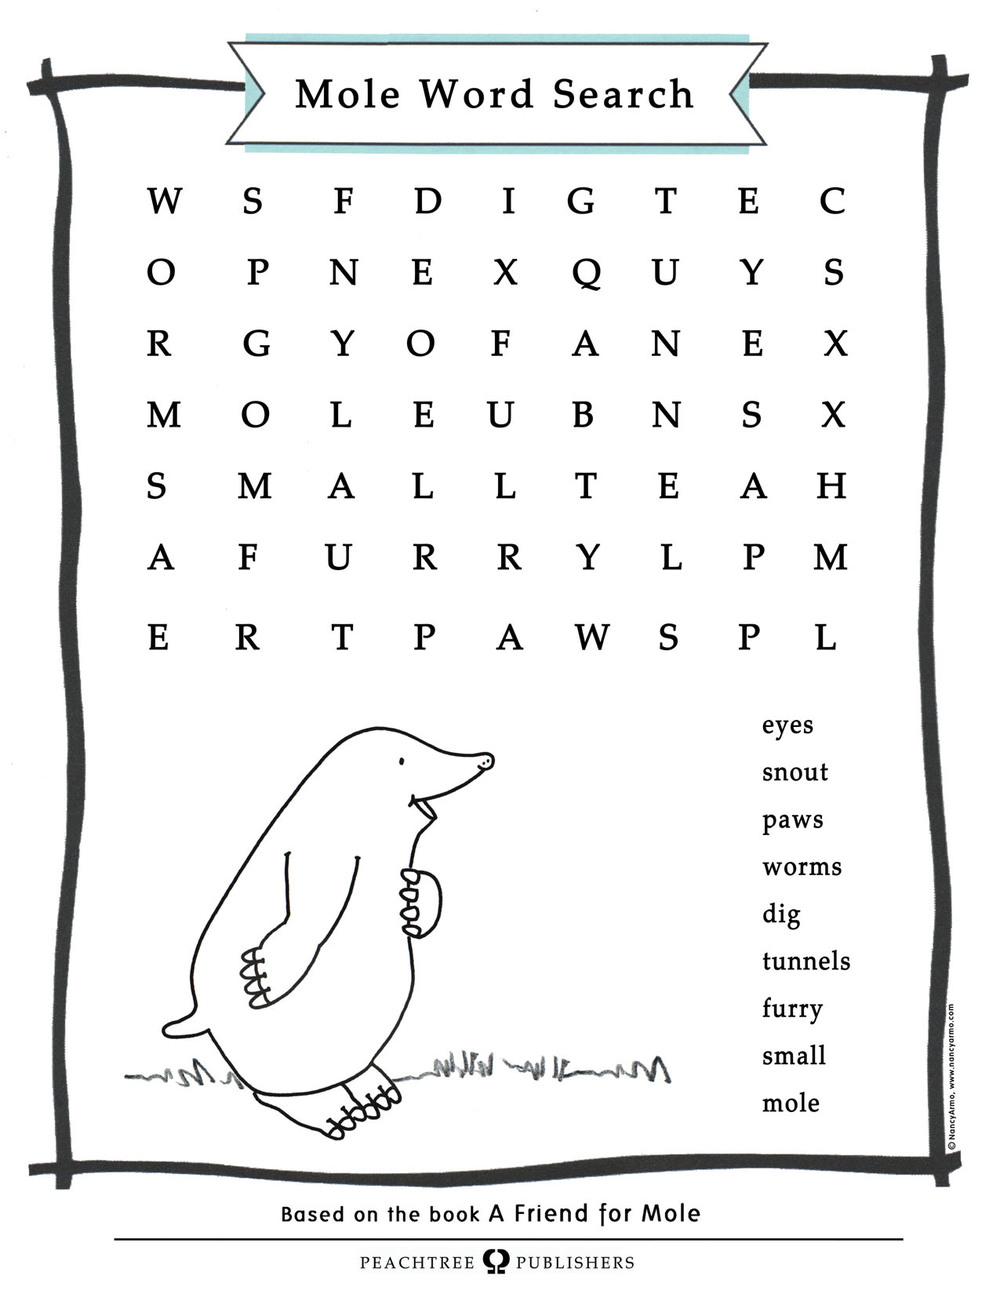 Mole Word Search